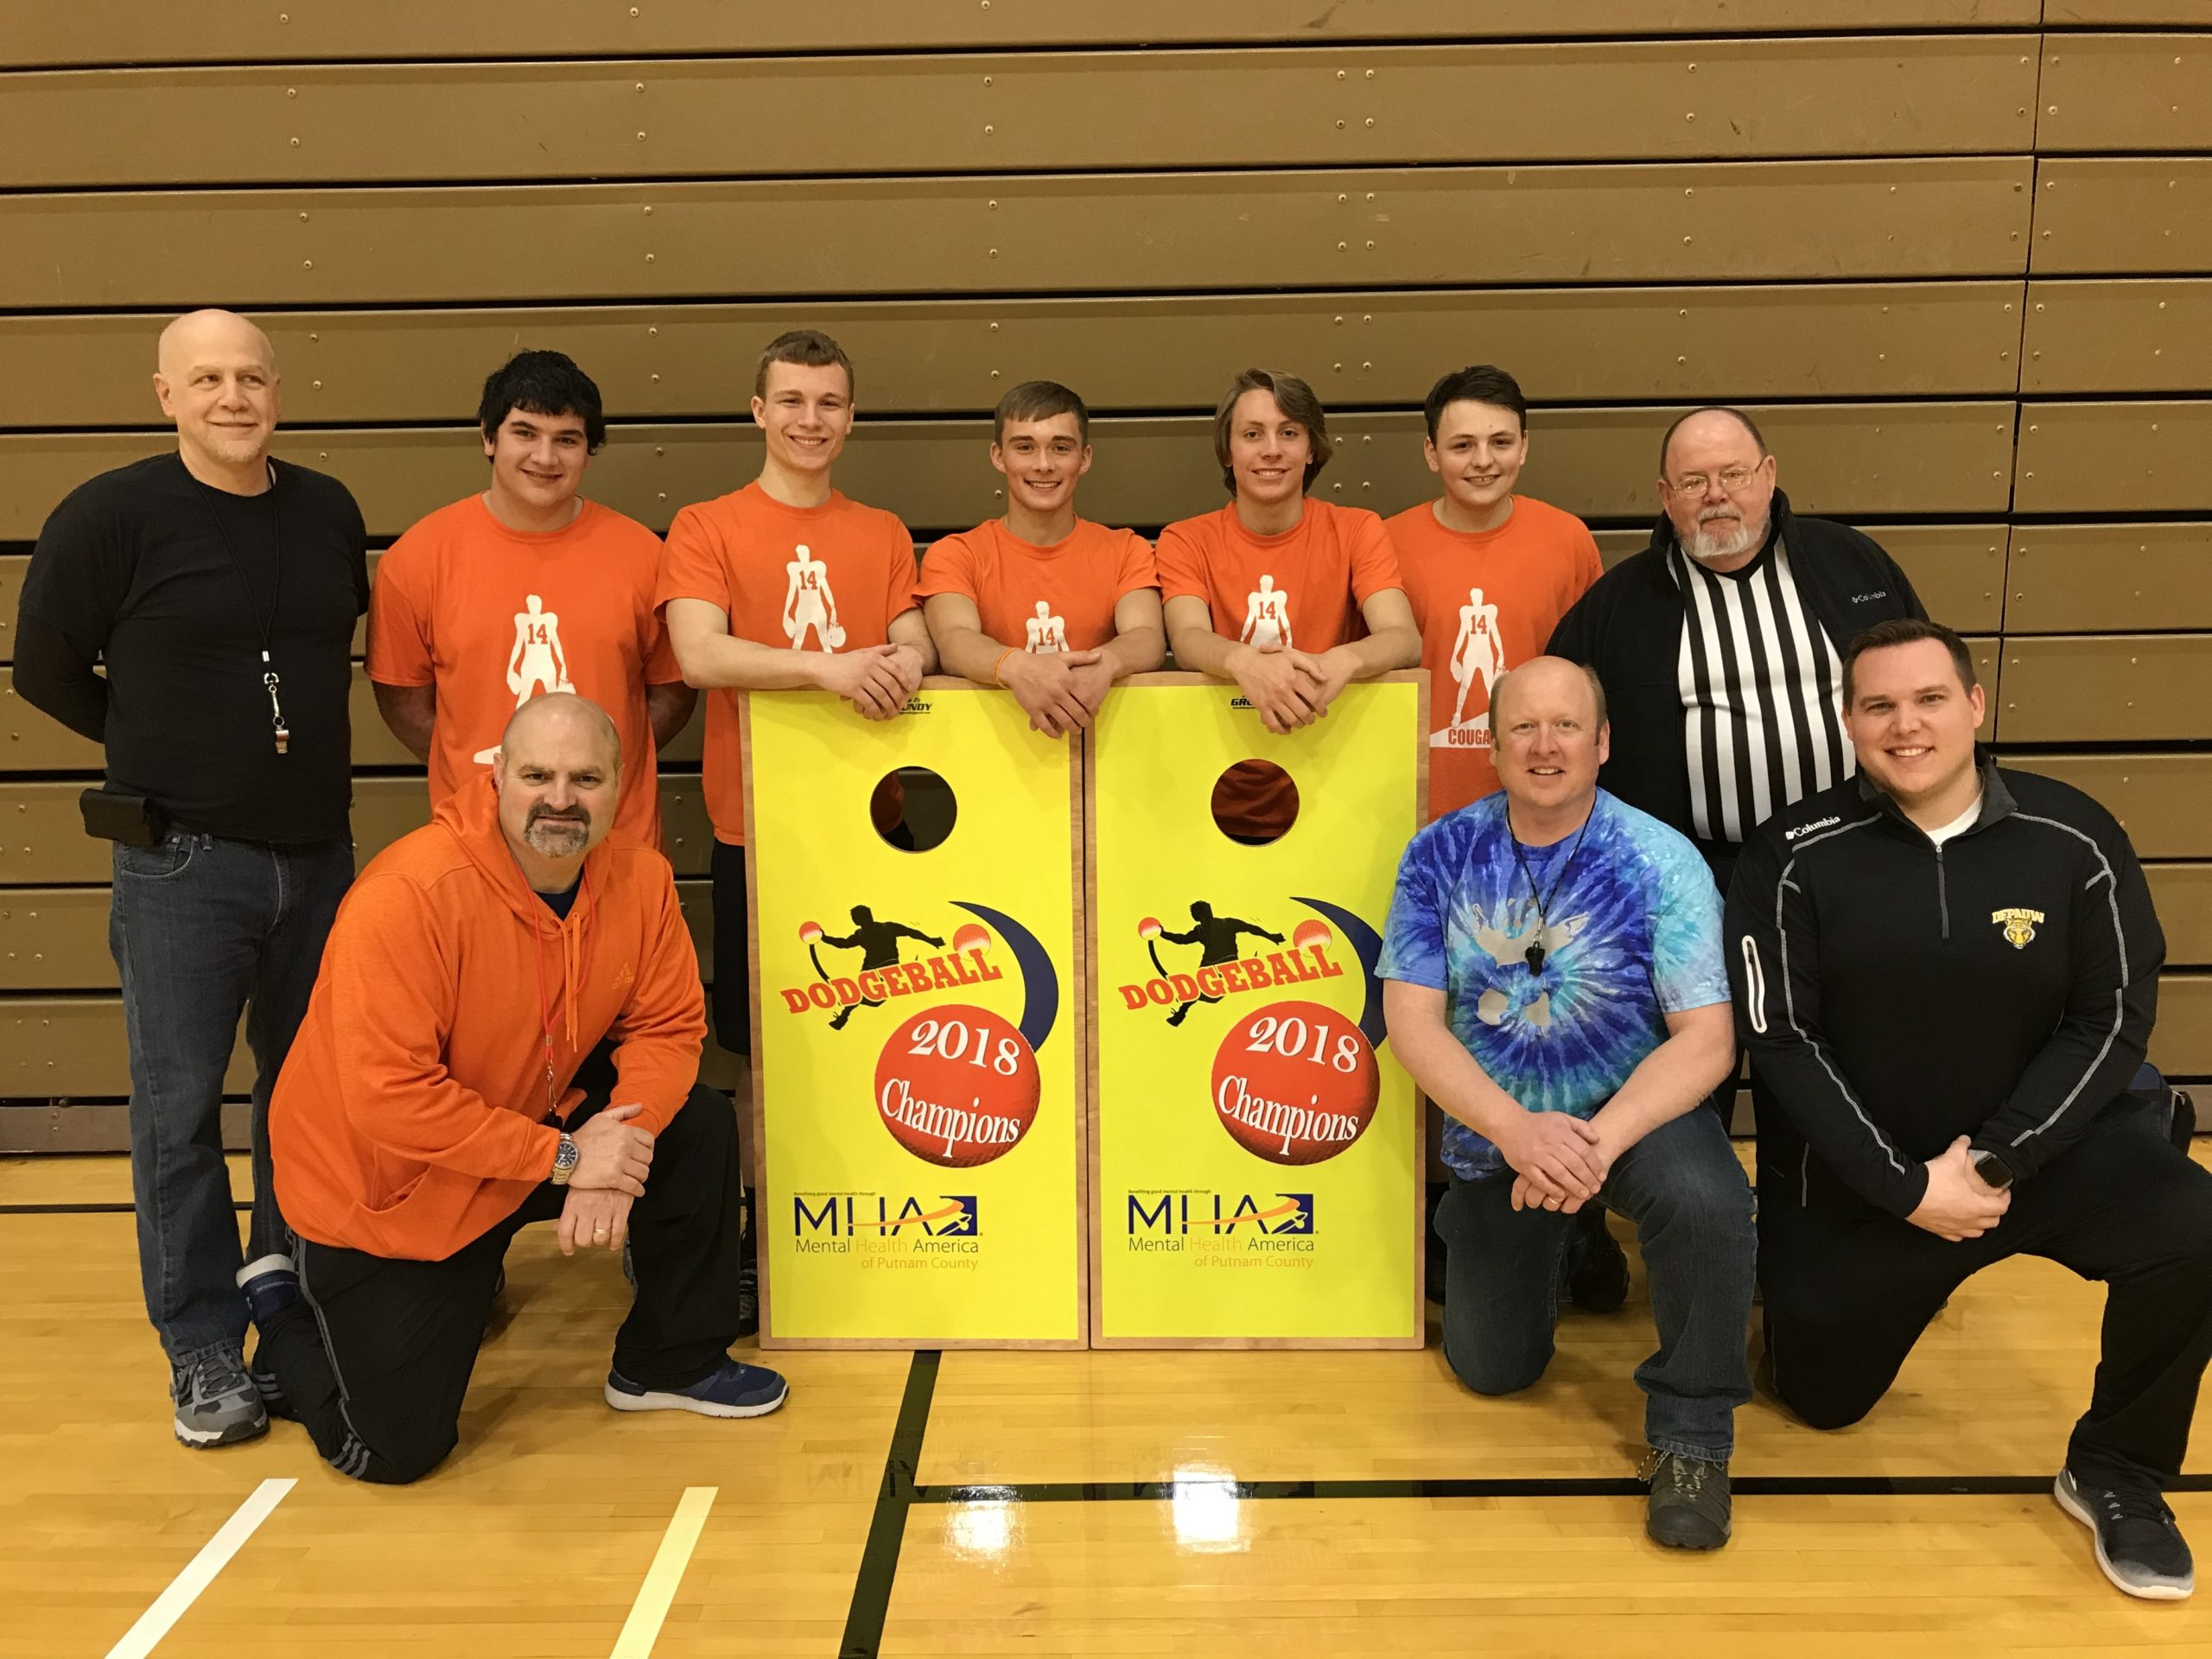 dodgeball tournament 2018